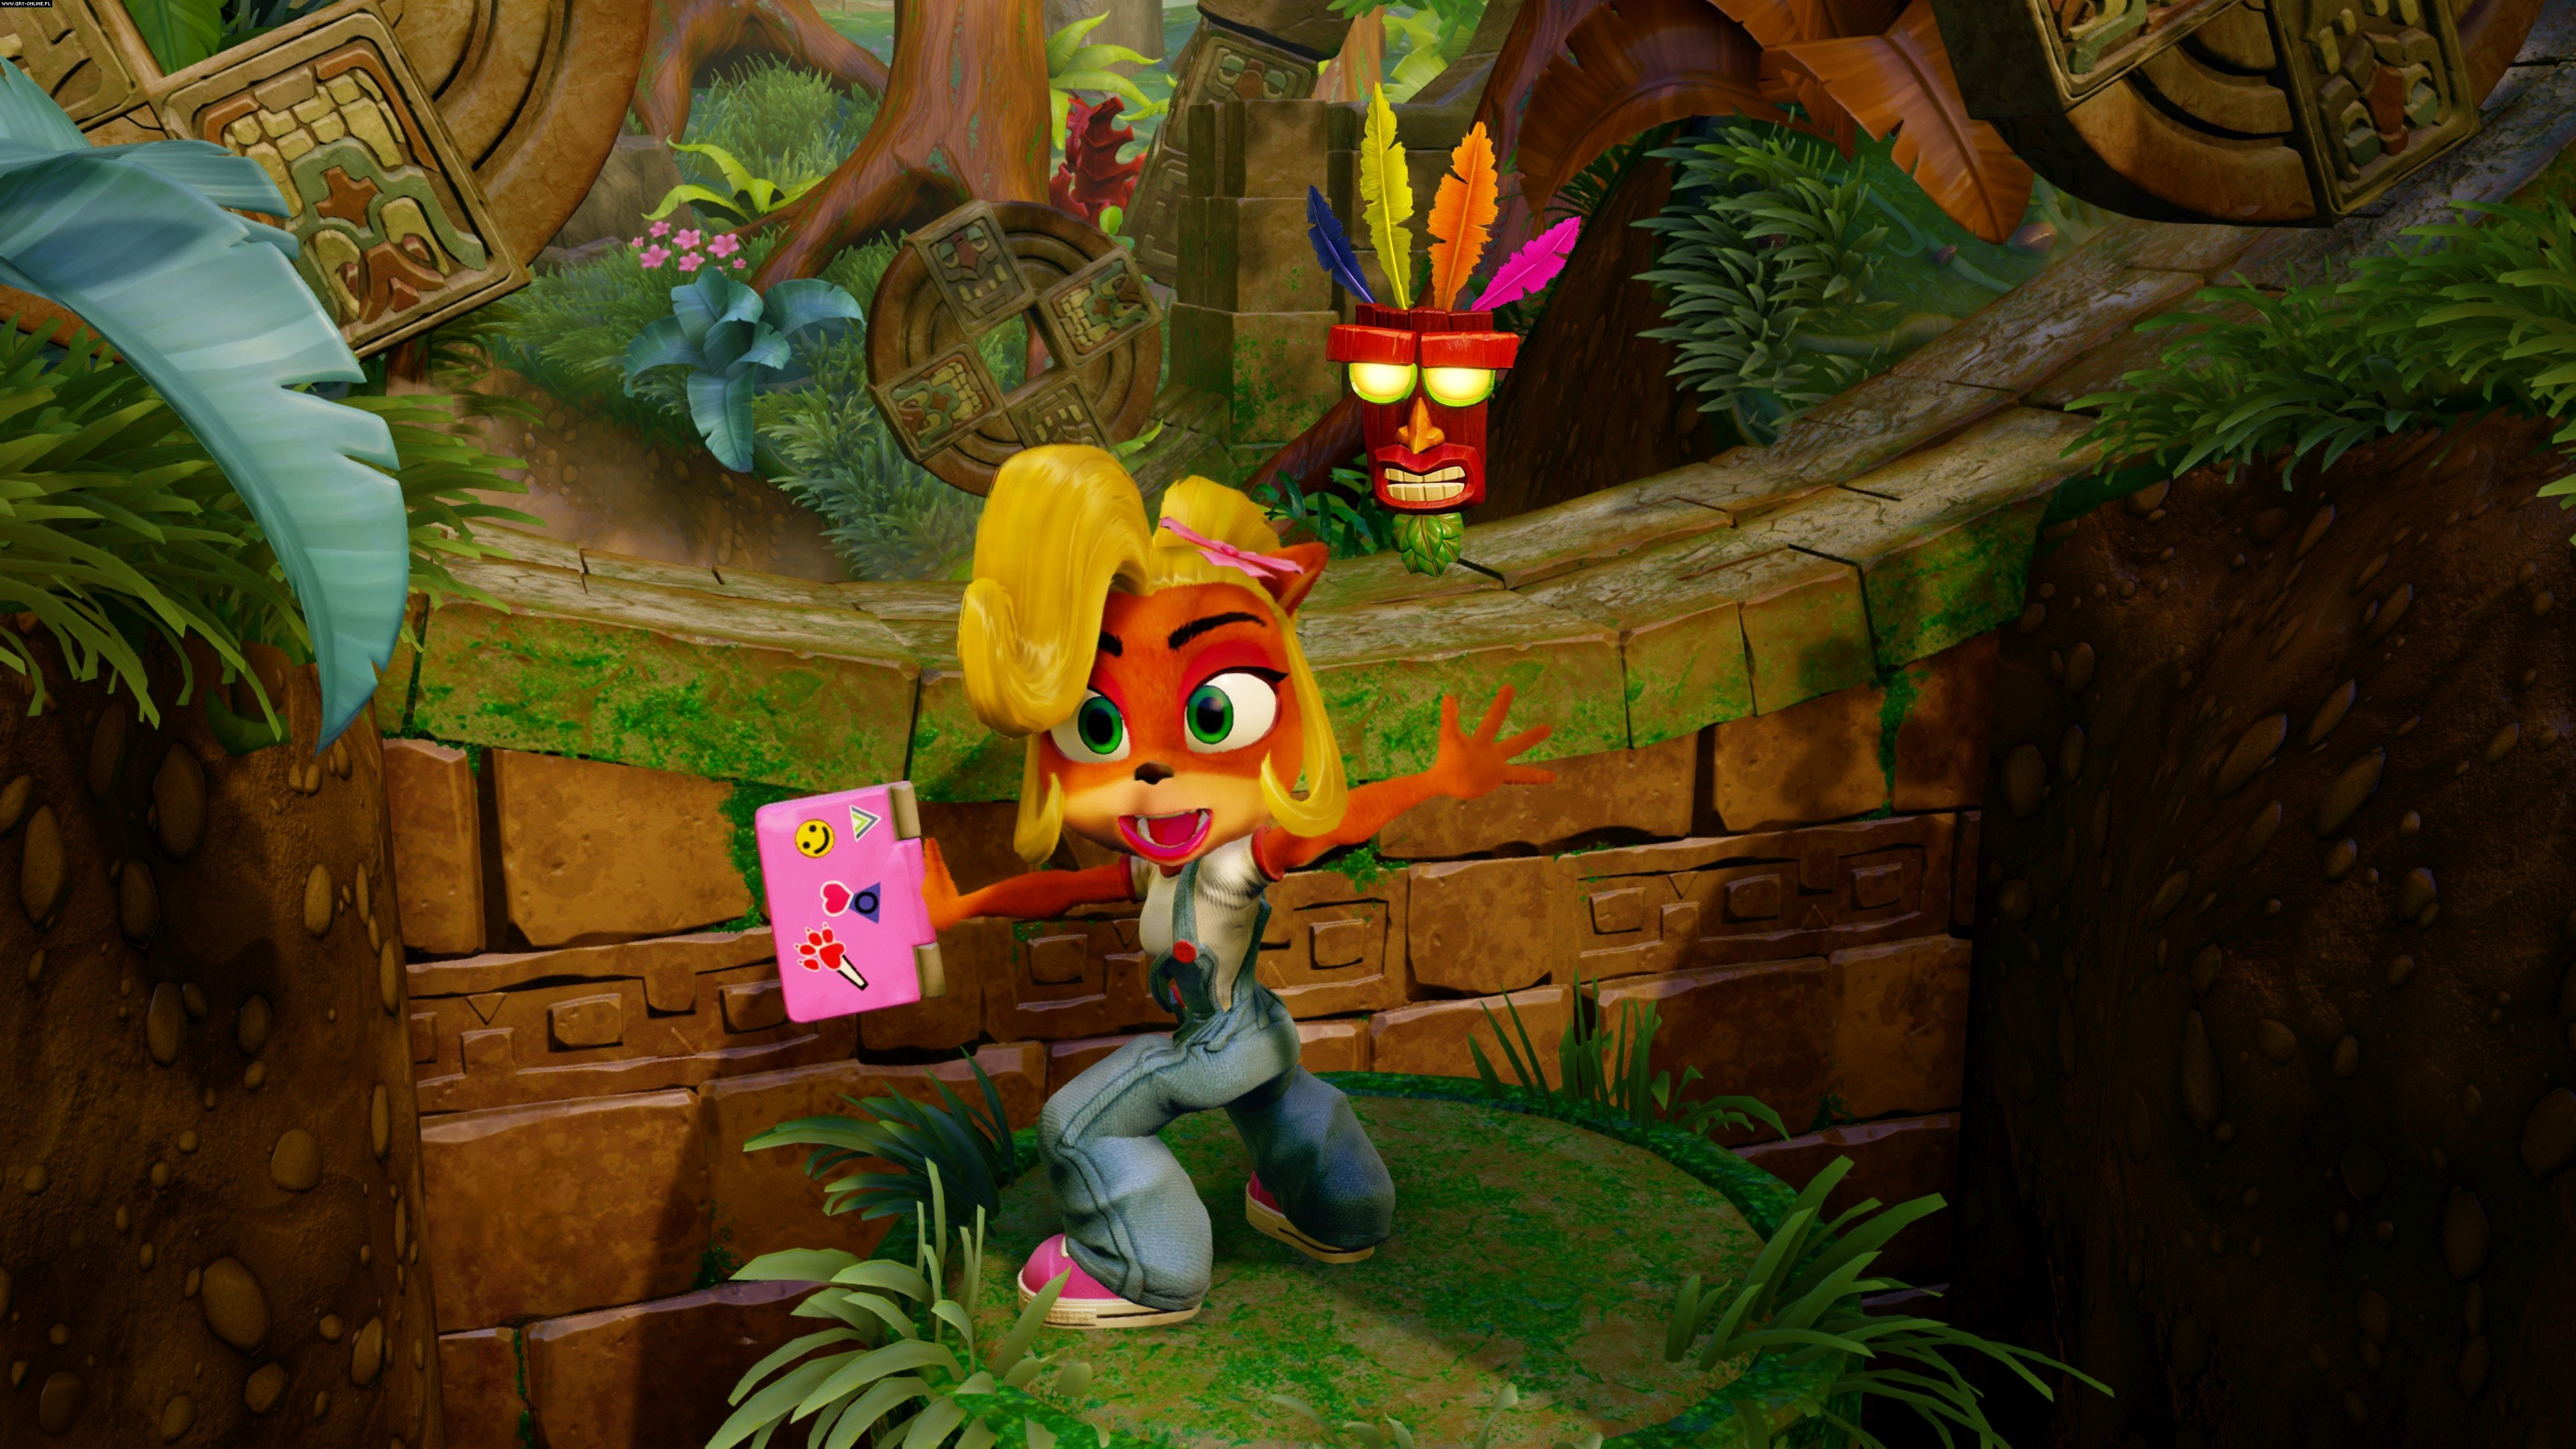 Crash Bandicoot N. Sane Trilogy PS4 Gry Screen 85/115, Vicarious Visions, Activision Blizzard